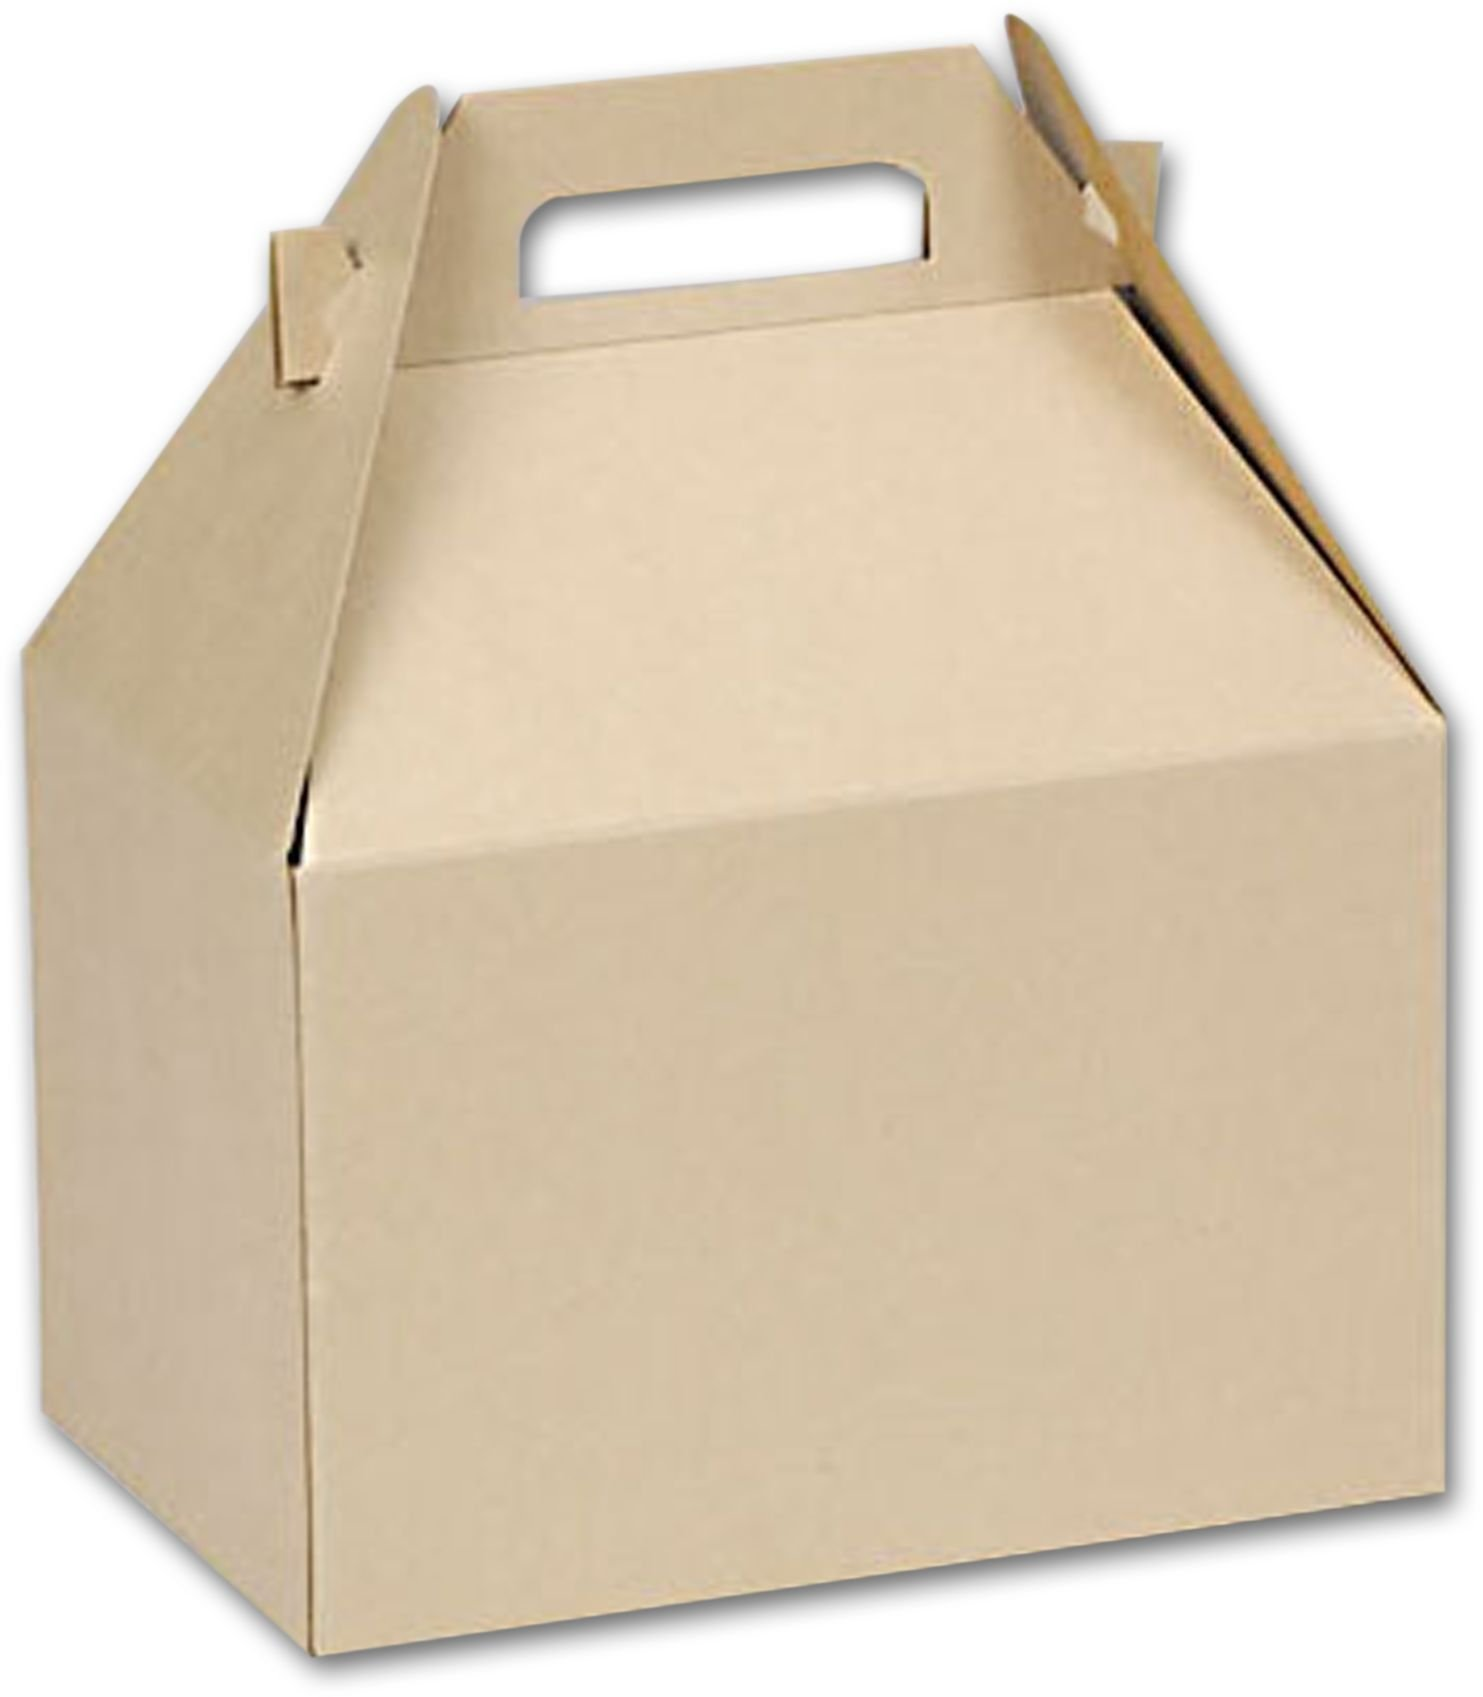 Natural Kraft Large Gable Boxes, 9 x 6 x 6'' (100 boxes) - BOWS-BXNATL